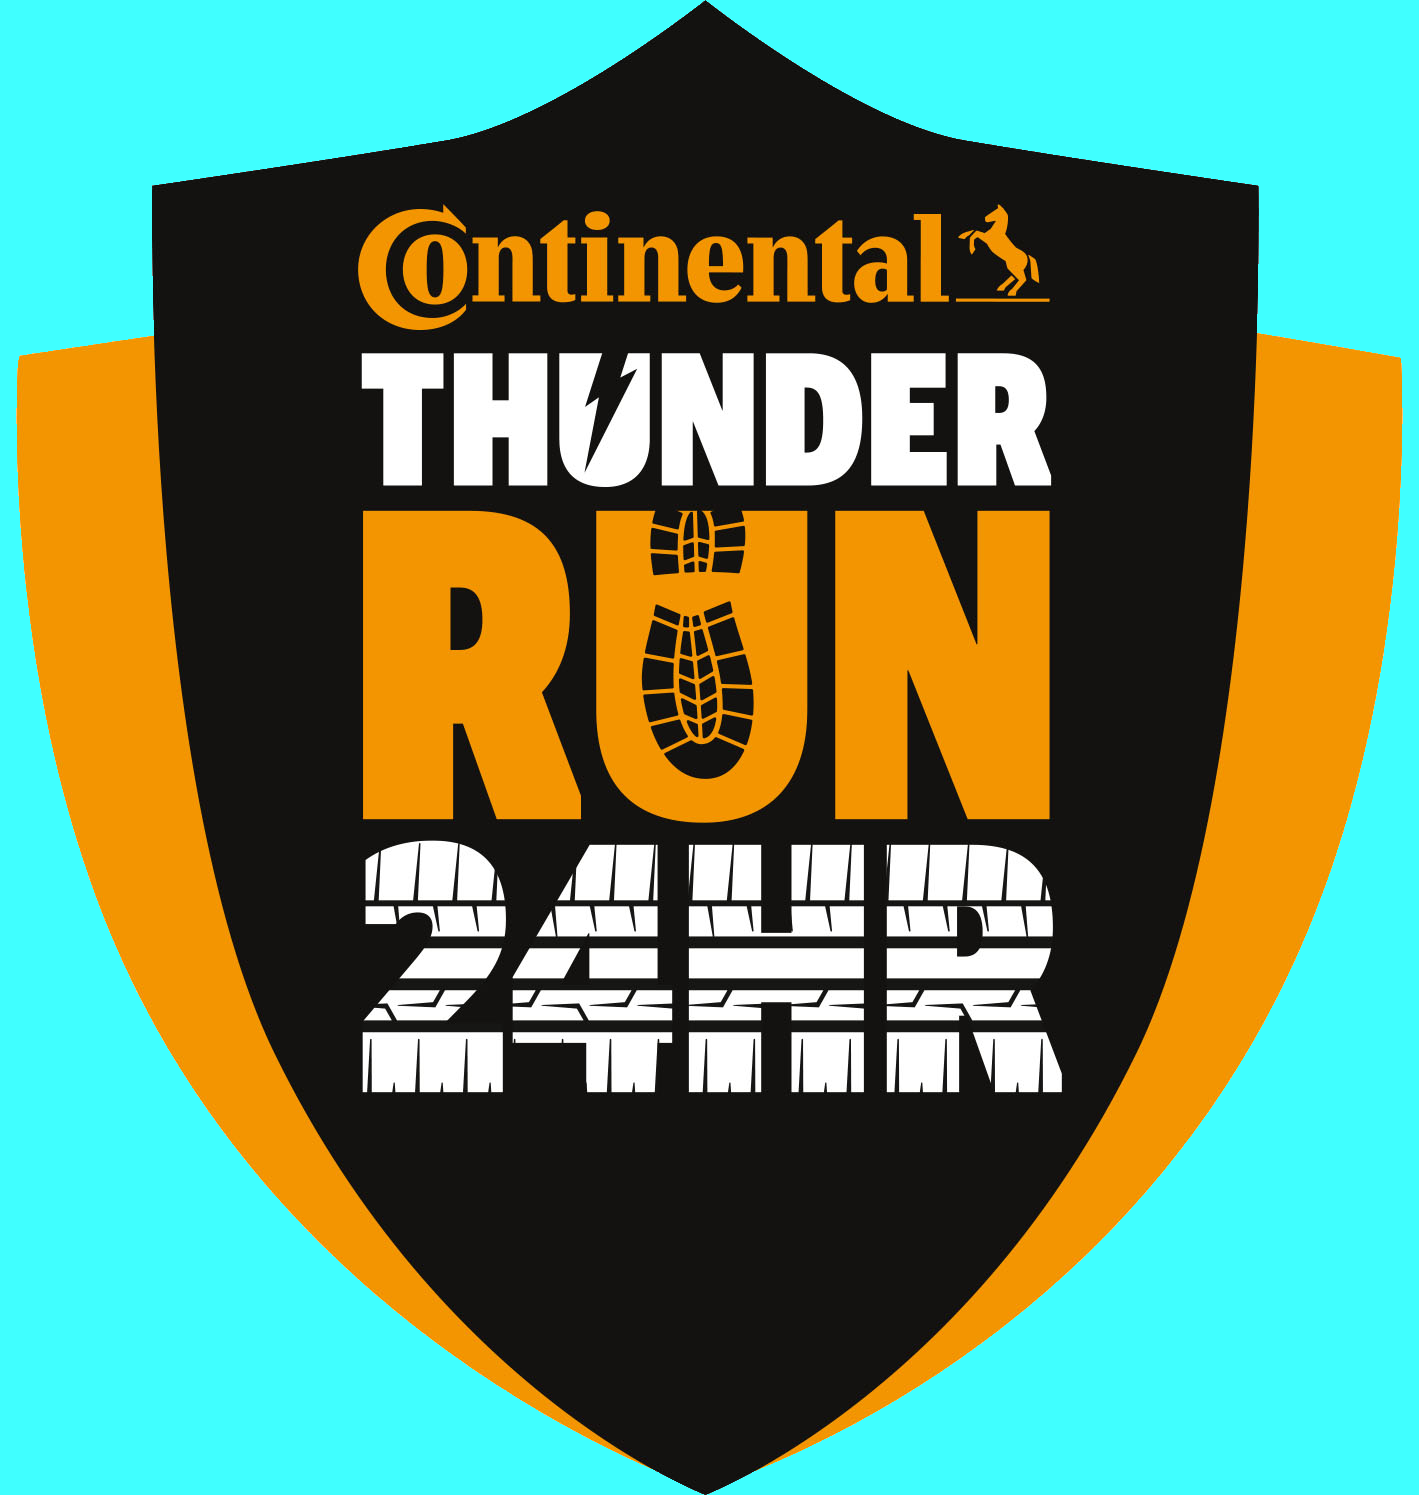 Continental Thunder Run 24hr